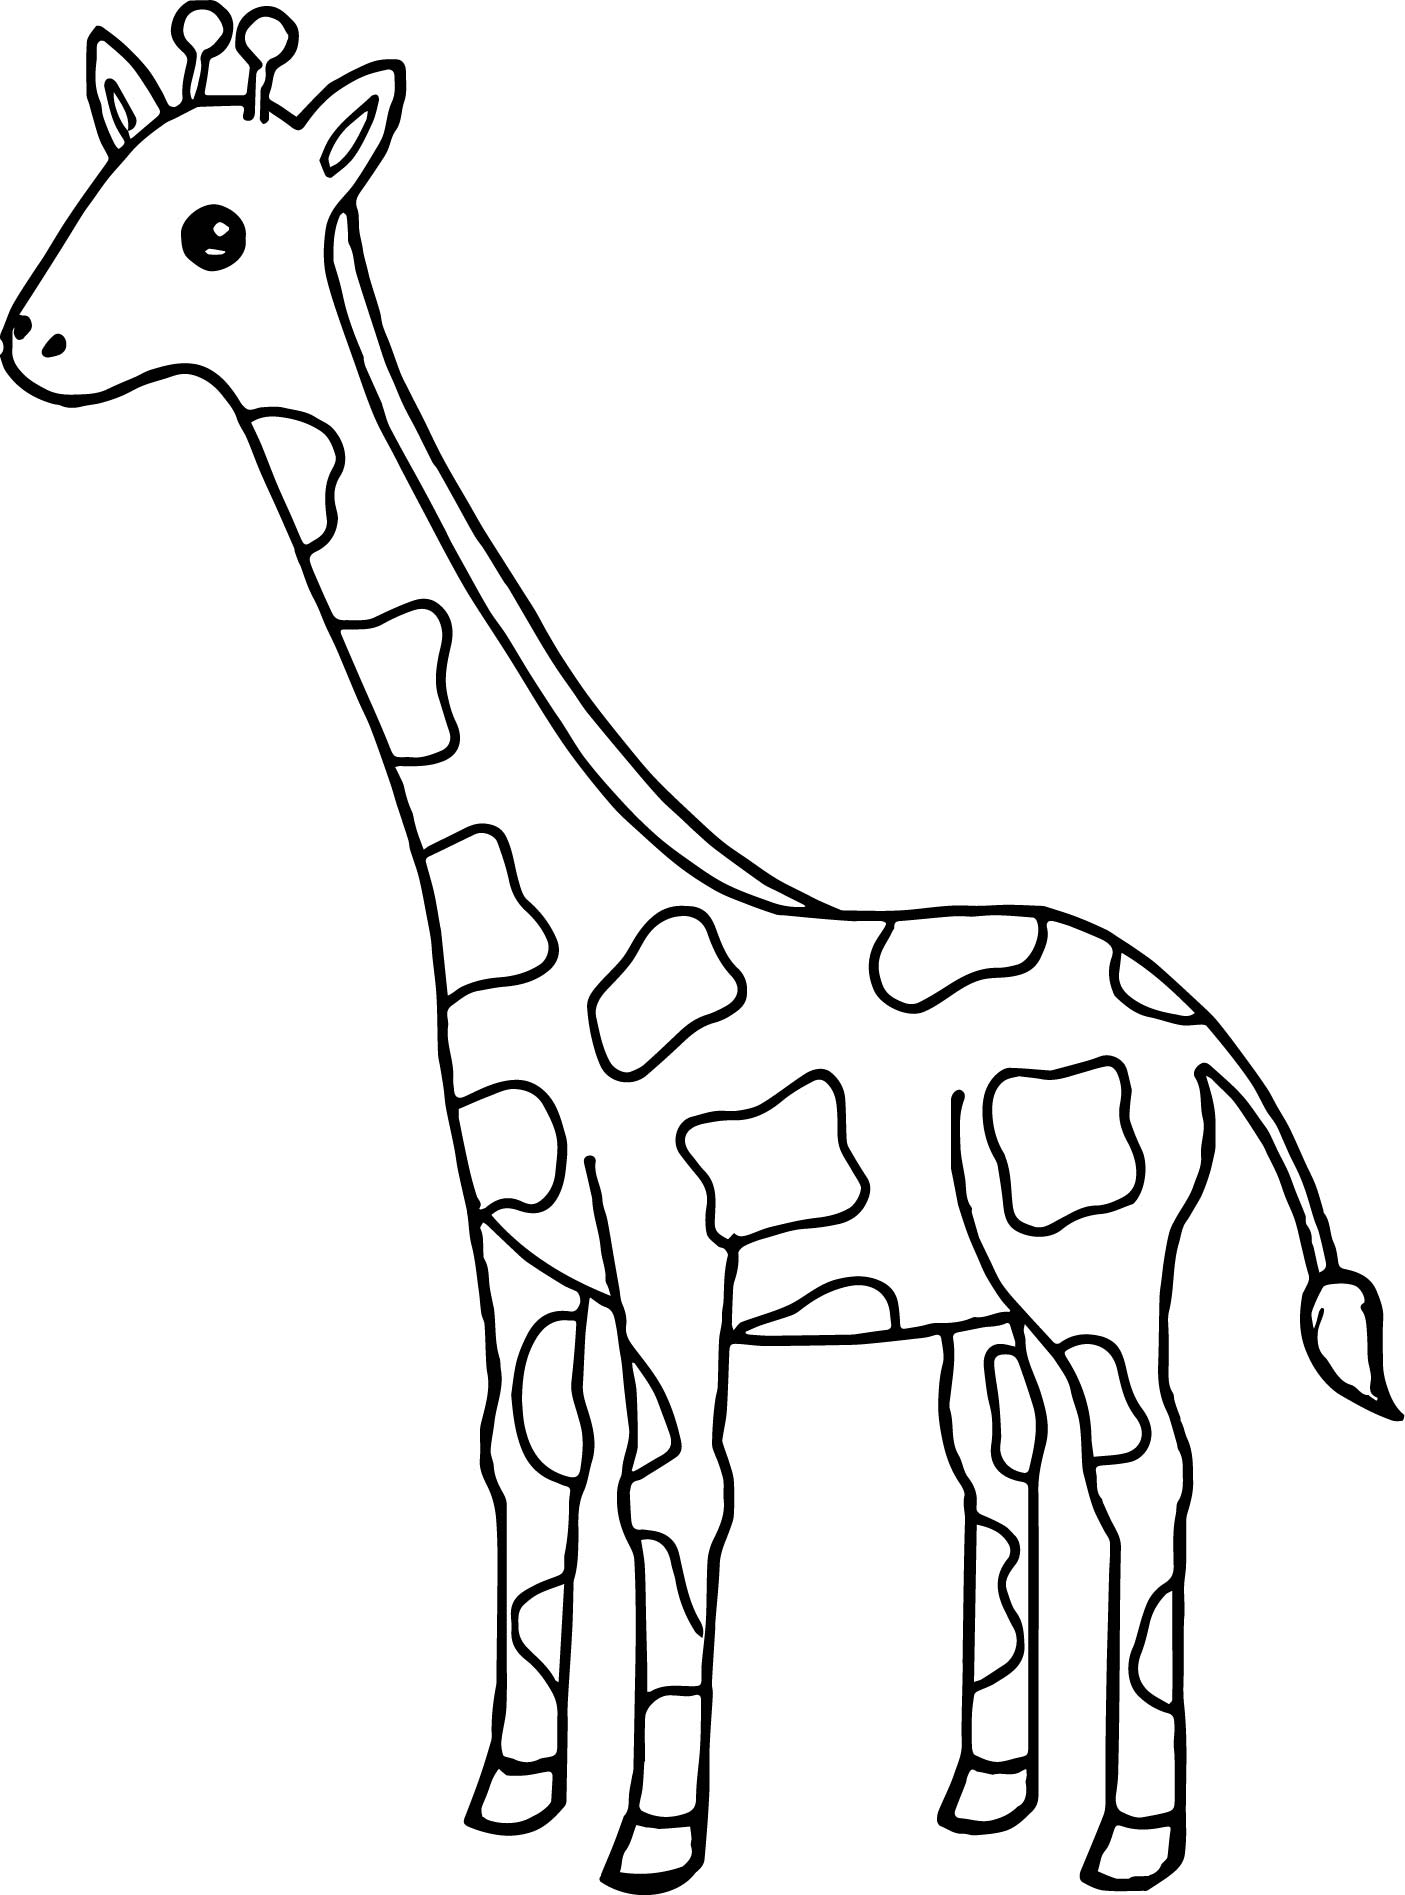 Giraffe Coloring Pages Awesome Tall Giraffe Coloring Page  Wecoloringpage Design Ideas